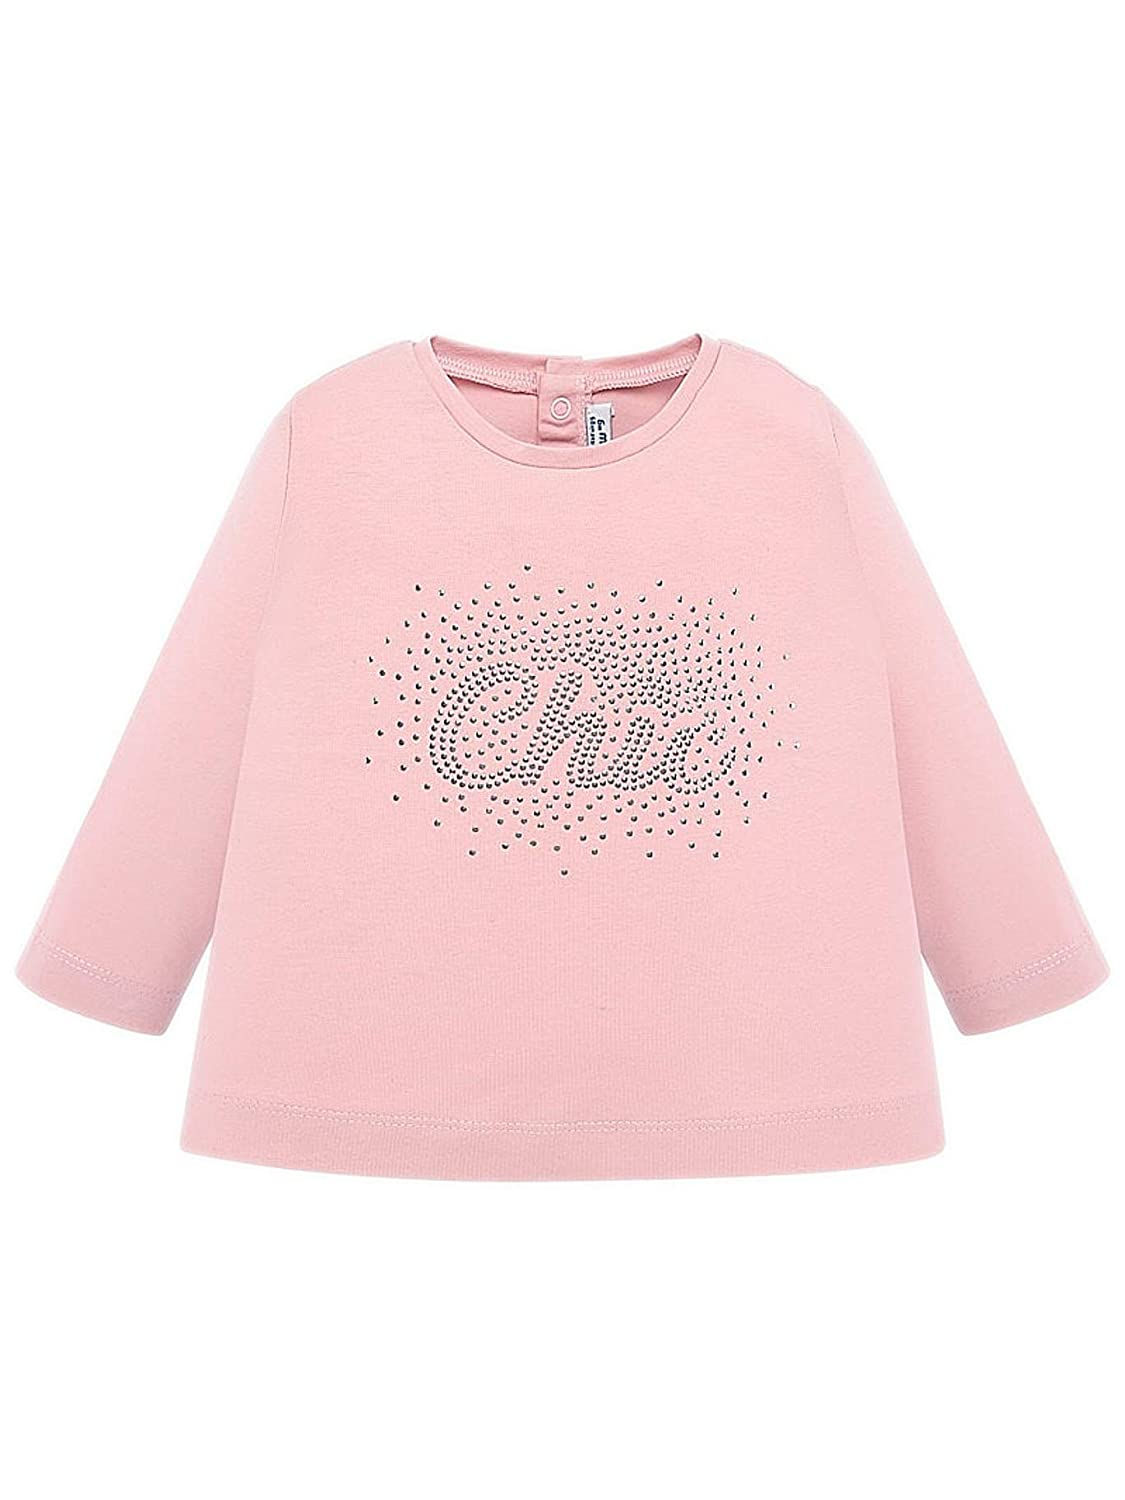 Mayoral L//s Basic t-Shirt for Baby-Girls Rose 0116